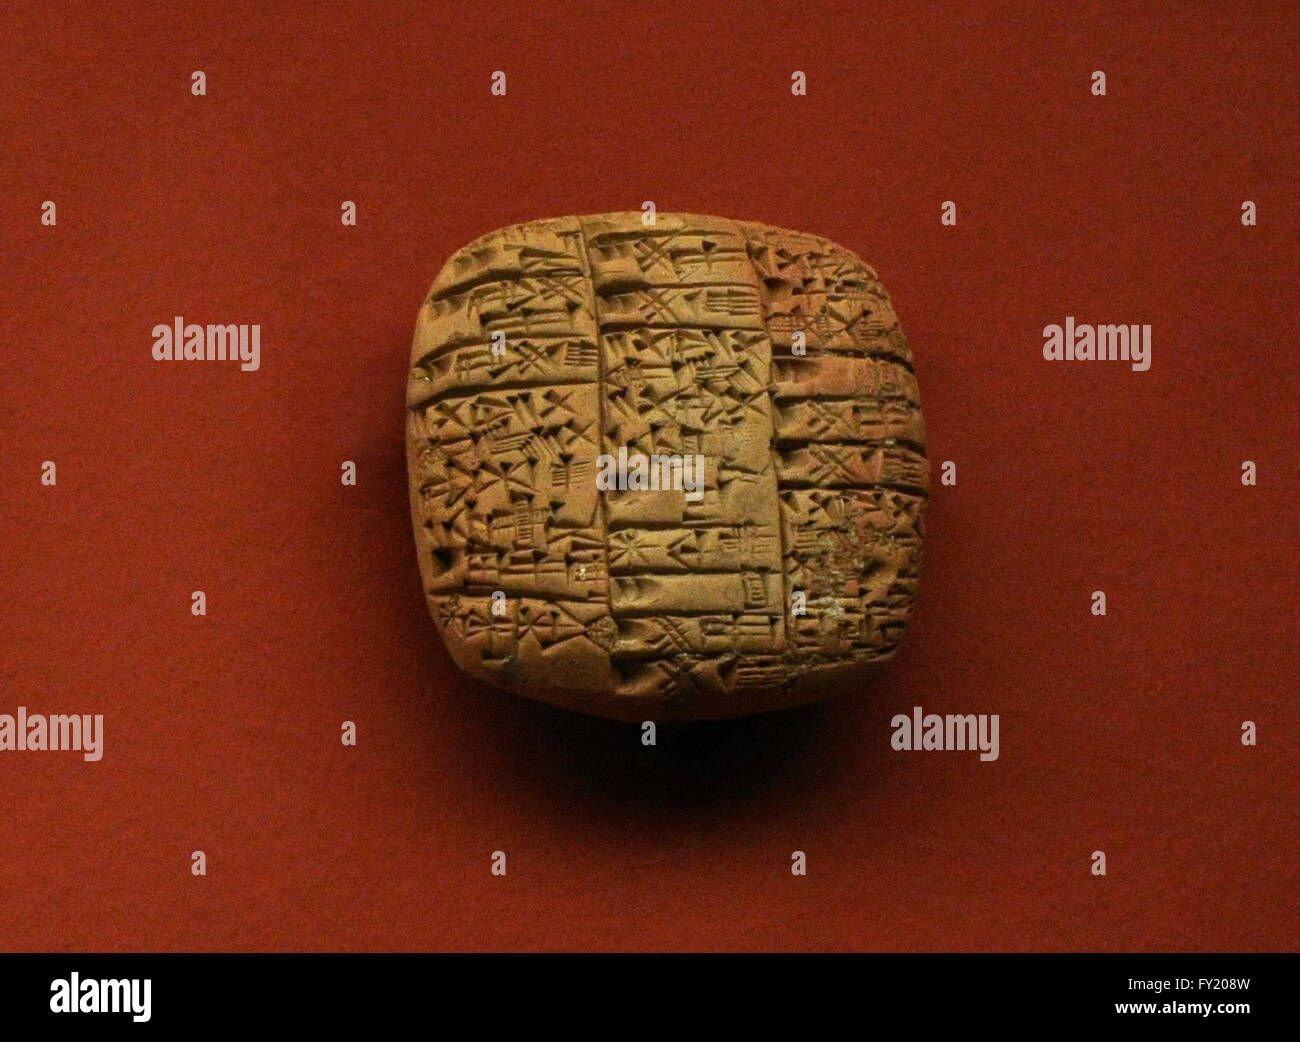 Sumer. Mesopotamia. Near East. Clay tablet. Offerings of flour, beer, butter, fish and cattle to the god Ningirsu and the Goddess Bau, his wife, as well as to other sanctuaries on the festival of the goddess Bau. The State Hermitage Museum. Saint Petersburg. Russia. Stock Photo